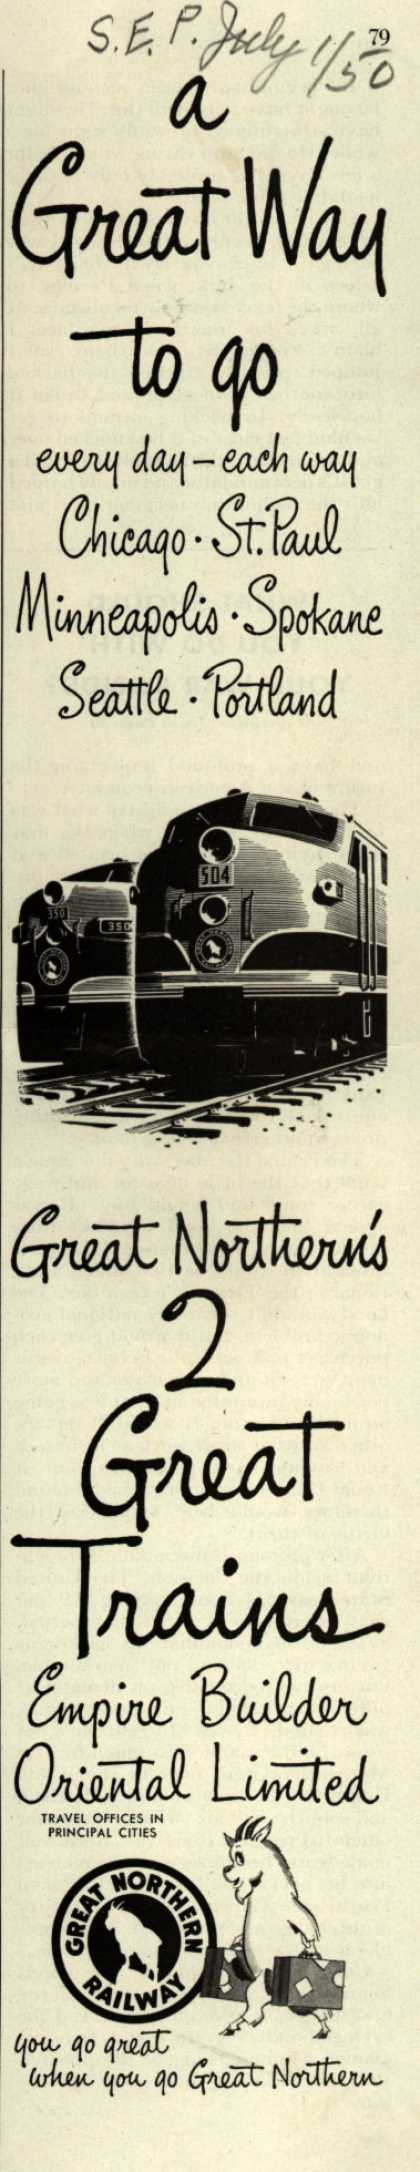 Great Northern Railway's various – a Great Way to go (1950)